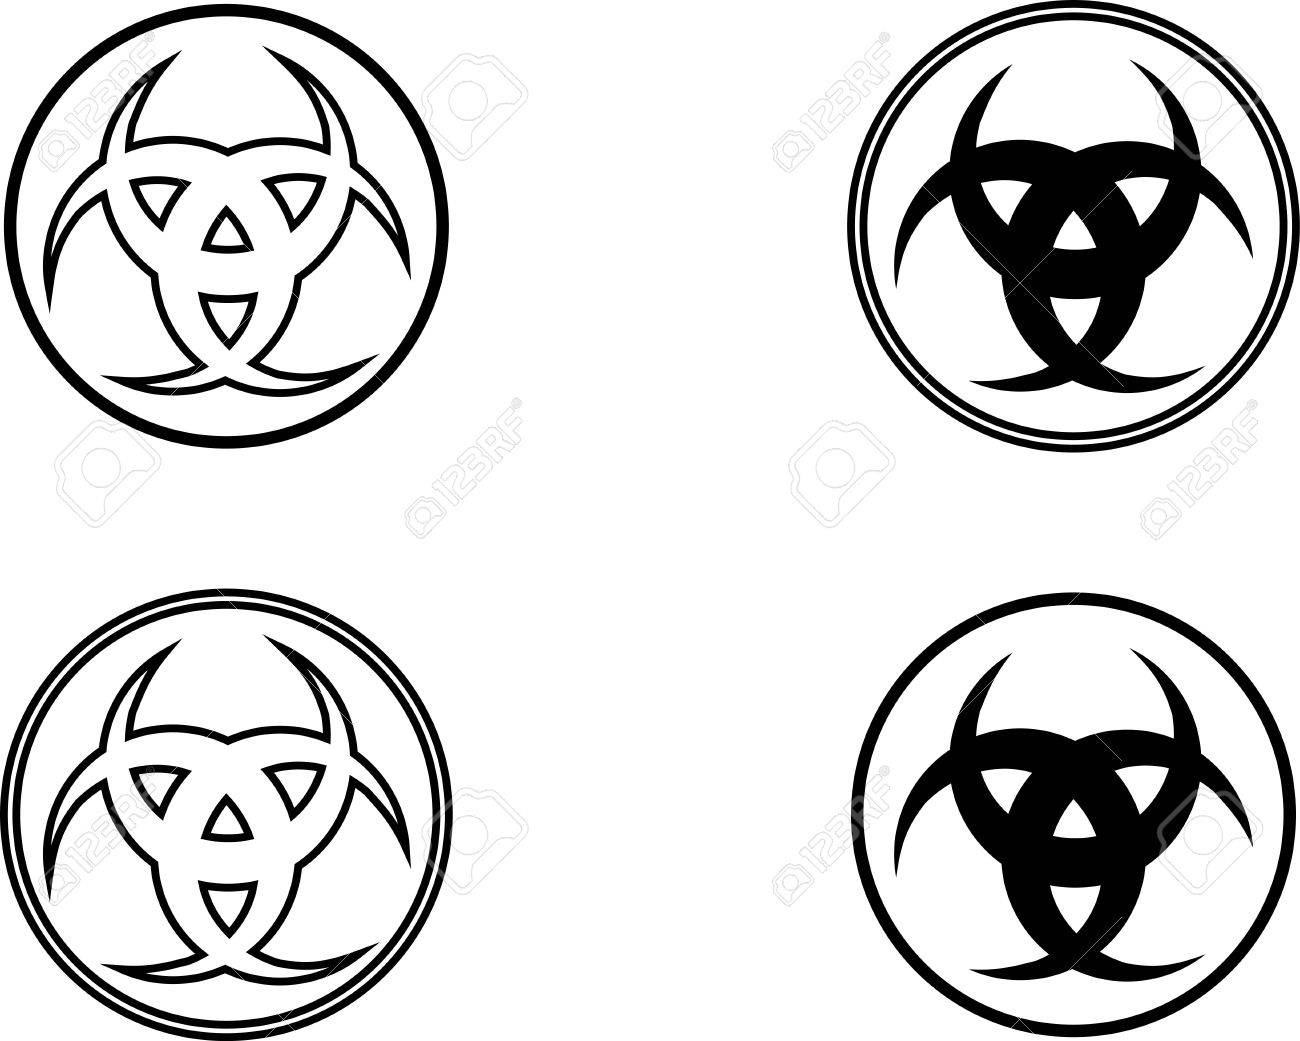 Three Crescent The Horn Of Odin Three Crescent Symbol Royalty